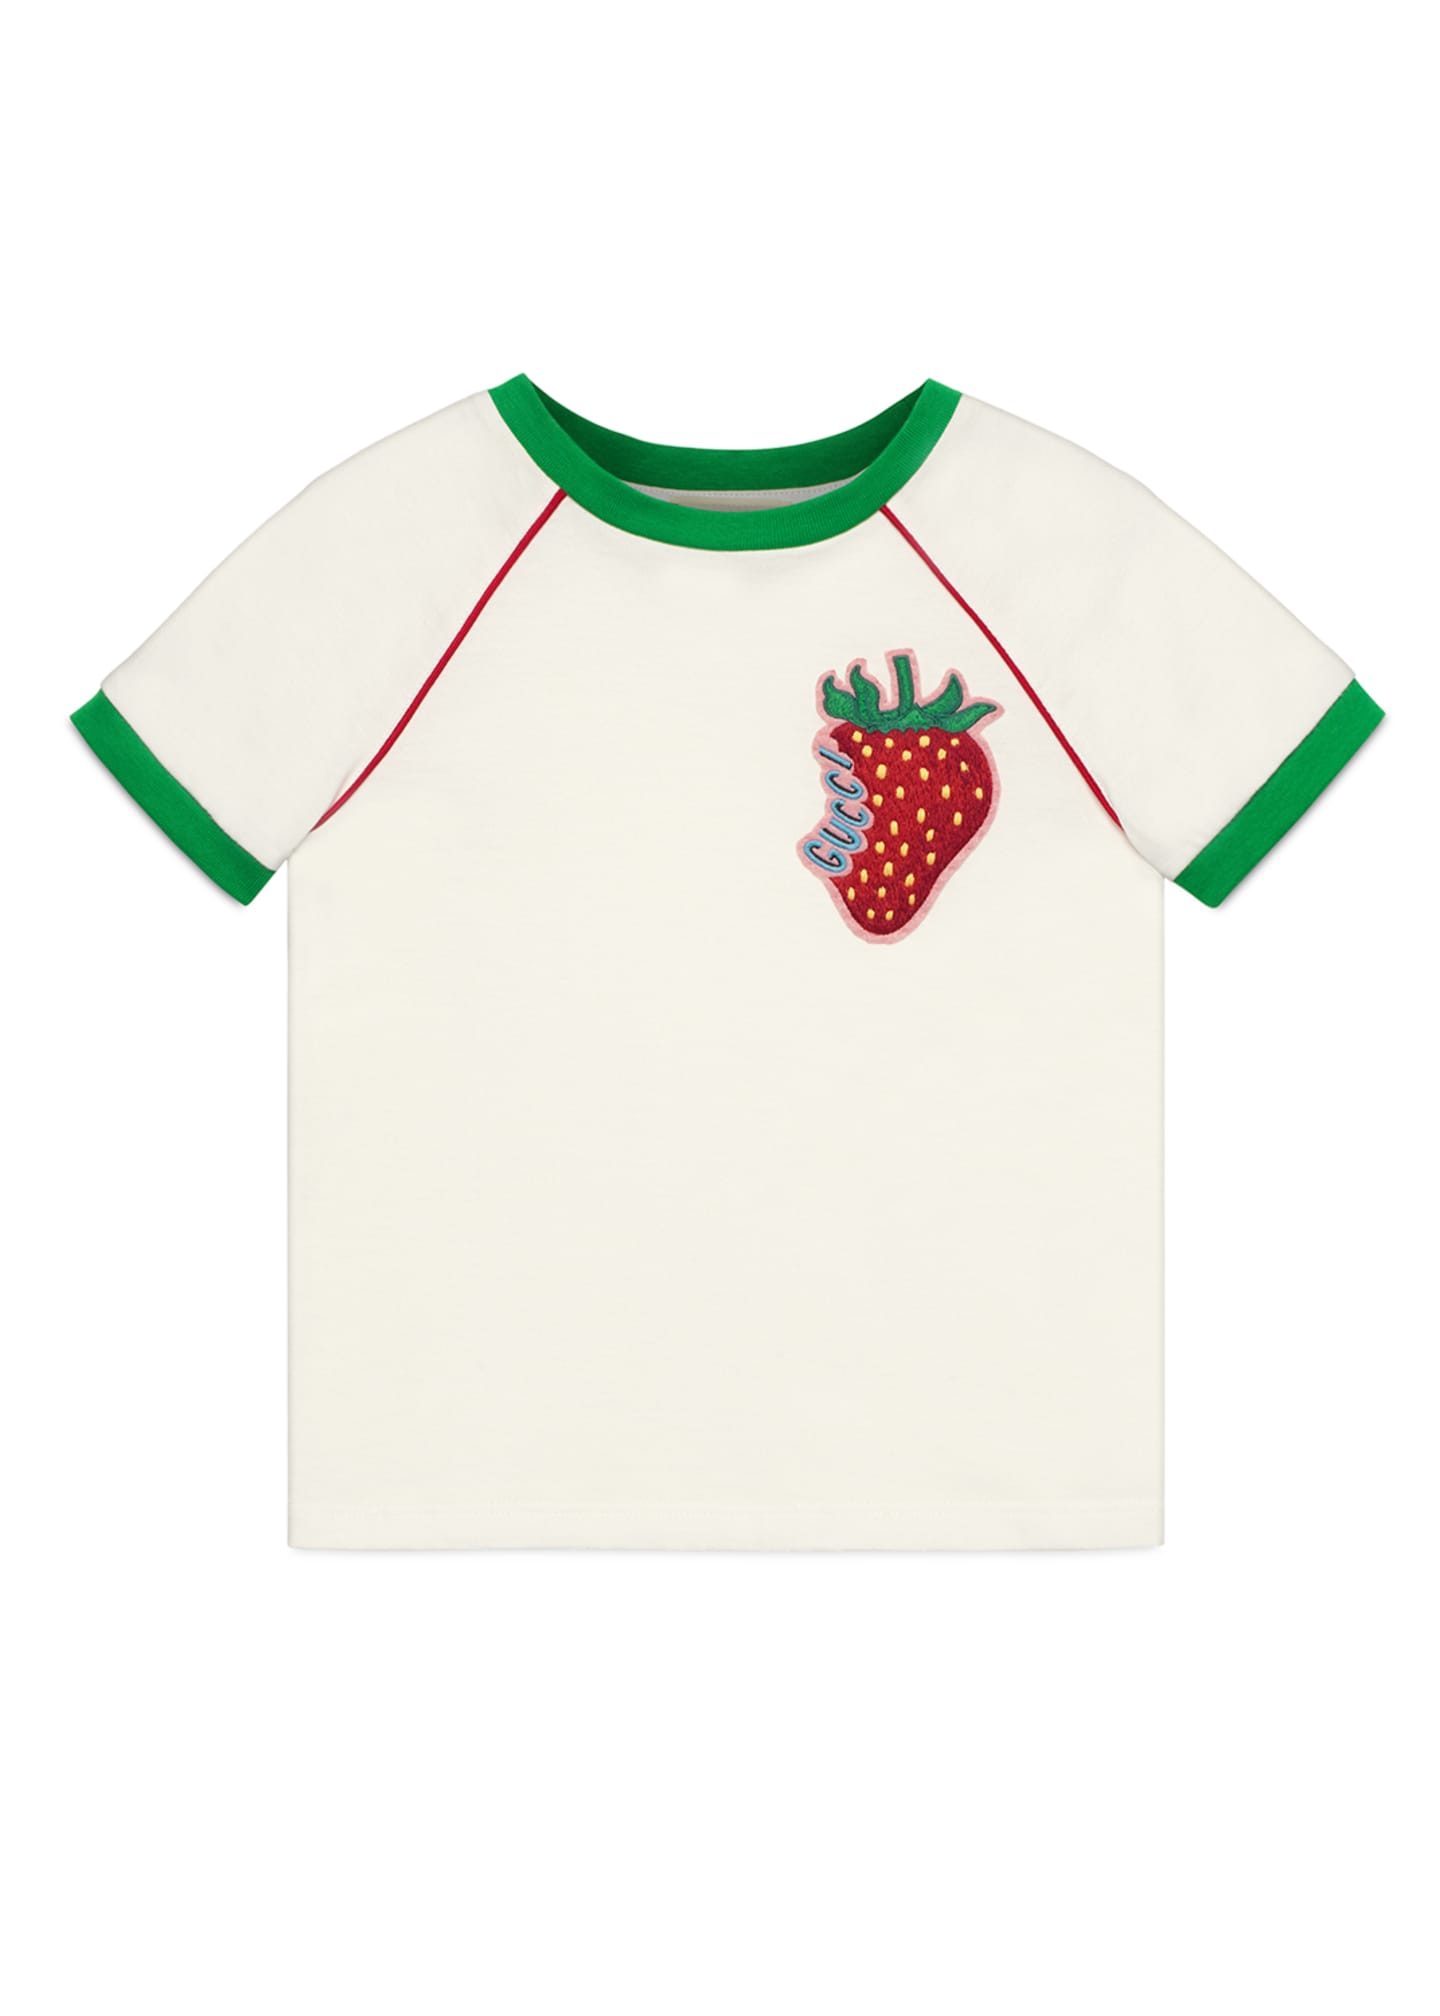 Gucci Strawberry Patch T-Shirt, Size 4-12